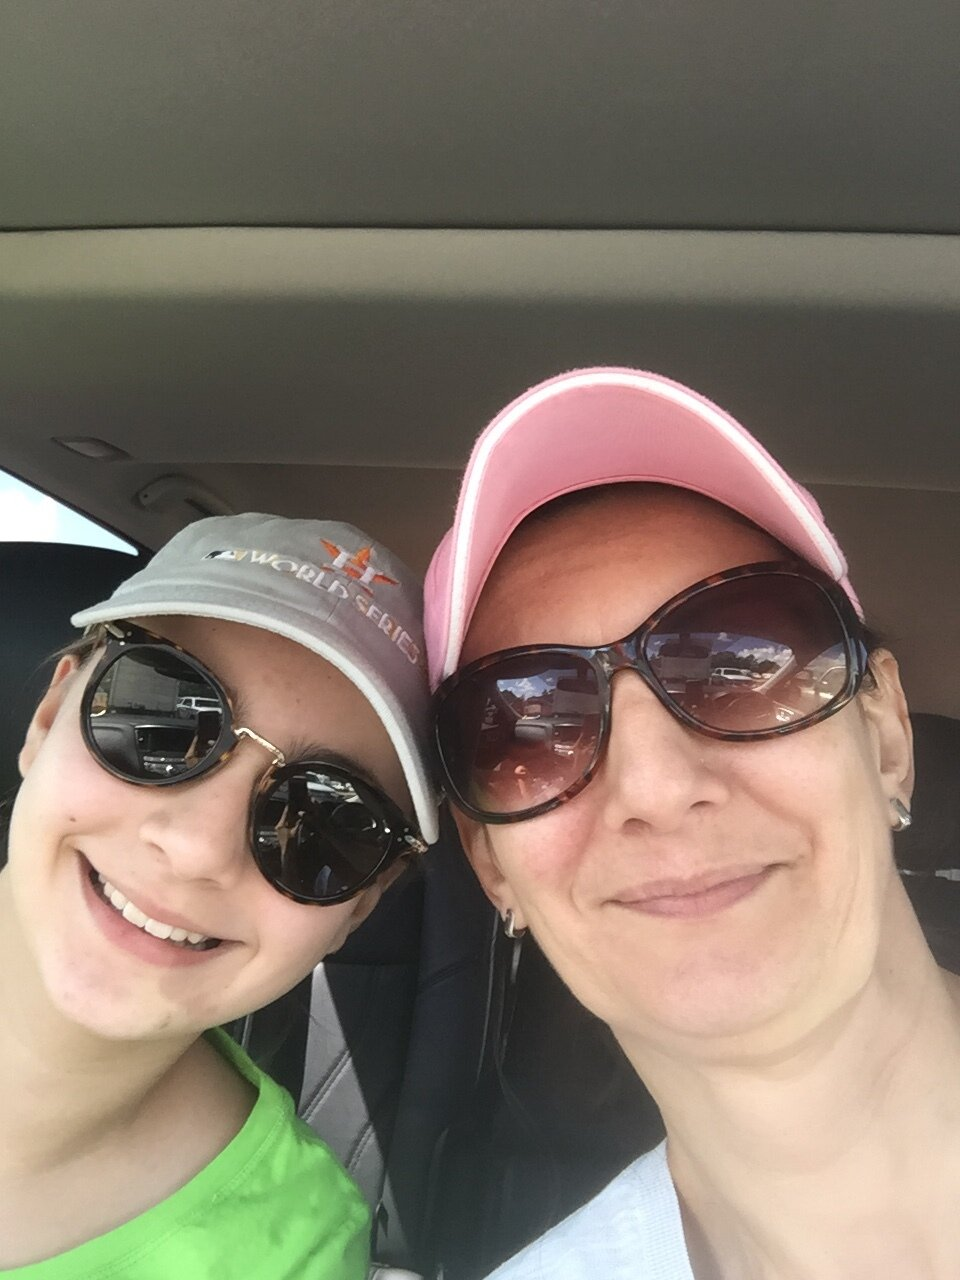 Fun with my favorite daughter!